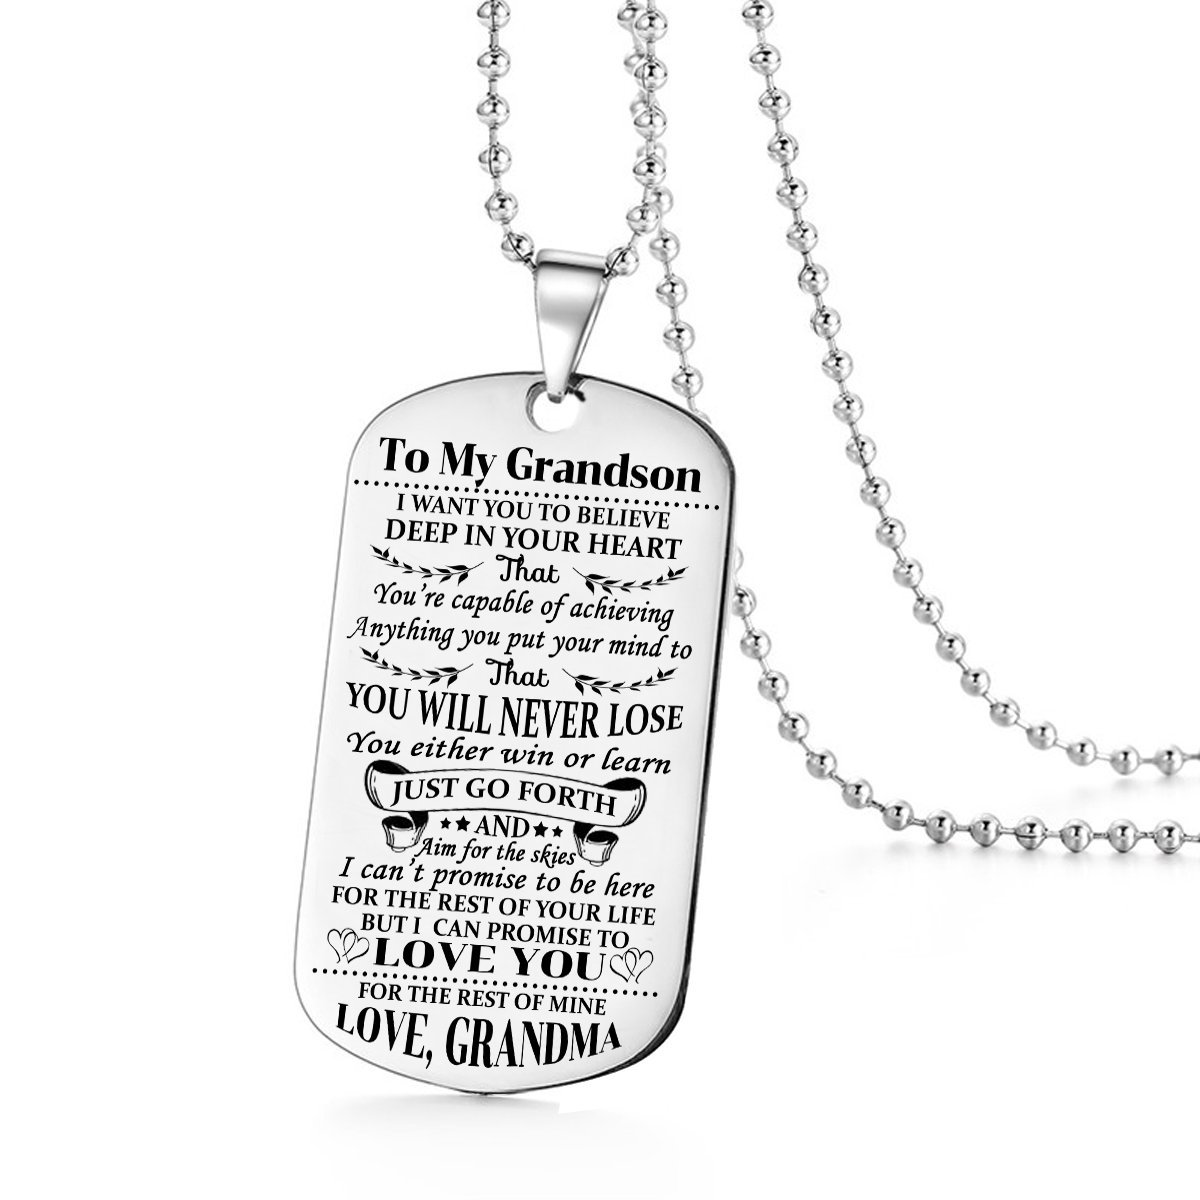 Stashix To My Grandson I want You Believe Love Grandma Grammie Nana Grammy Dog Tags Pendant Necklace Birthday Gift Jewelry Graduation Military Birthday Anniversary Personalized